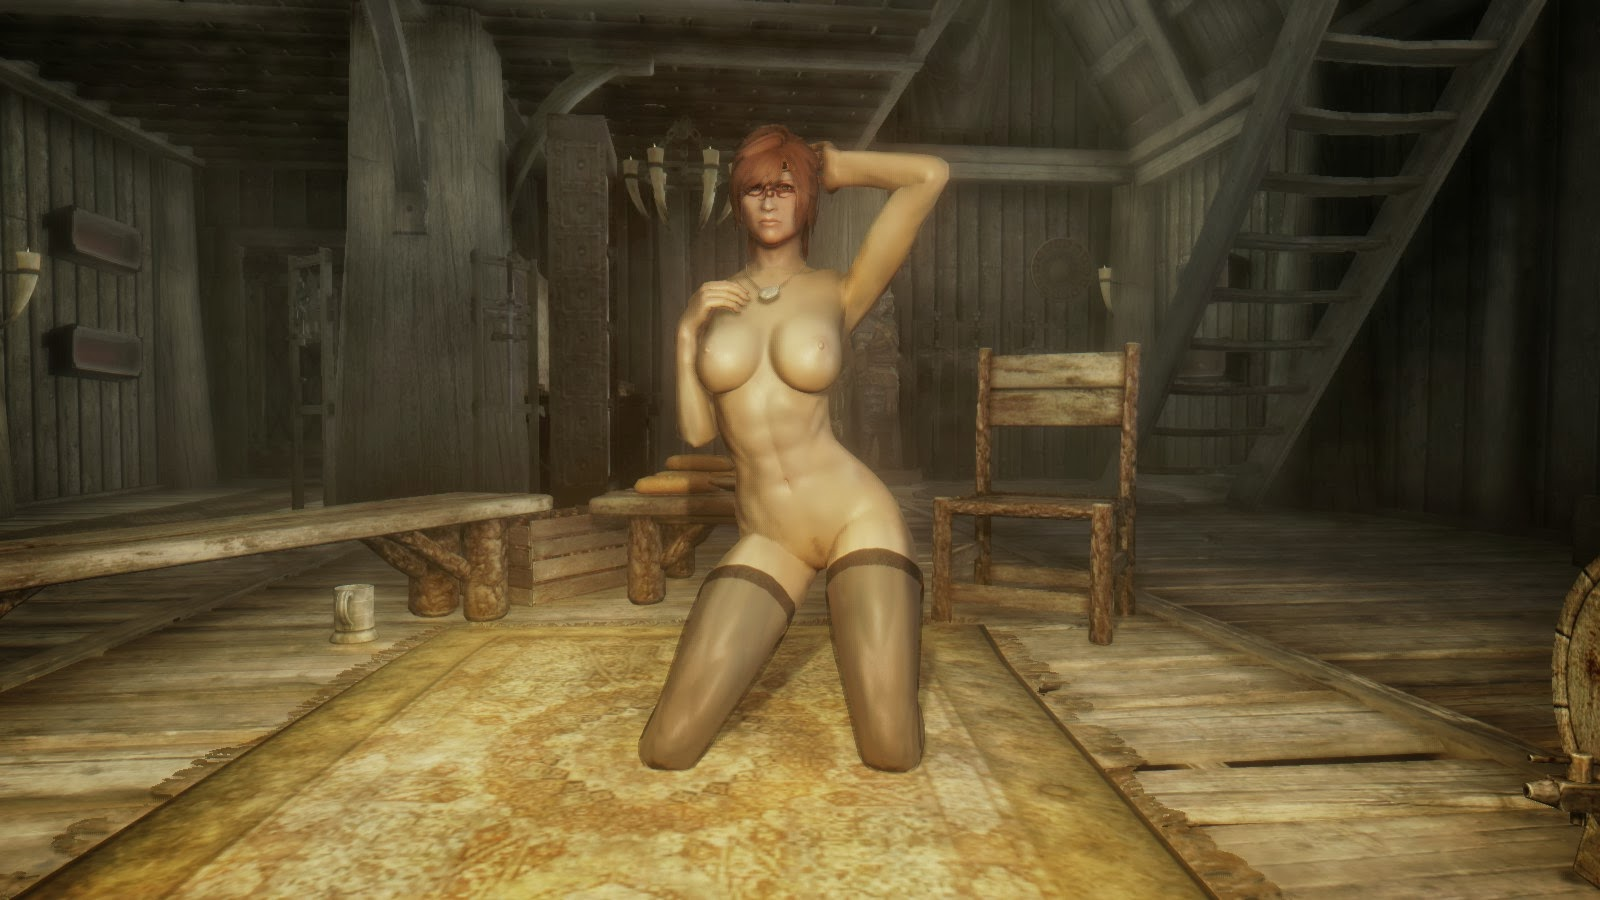 Elder scrolls nude mod hentai video